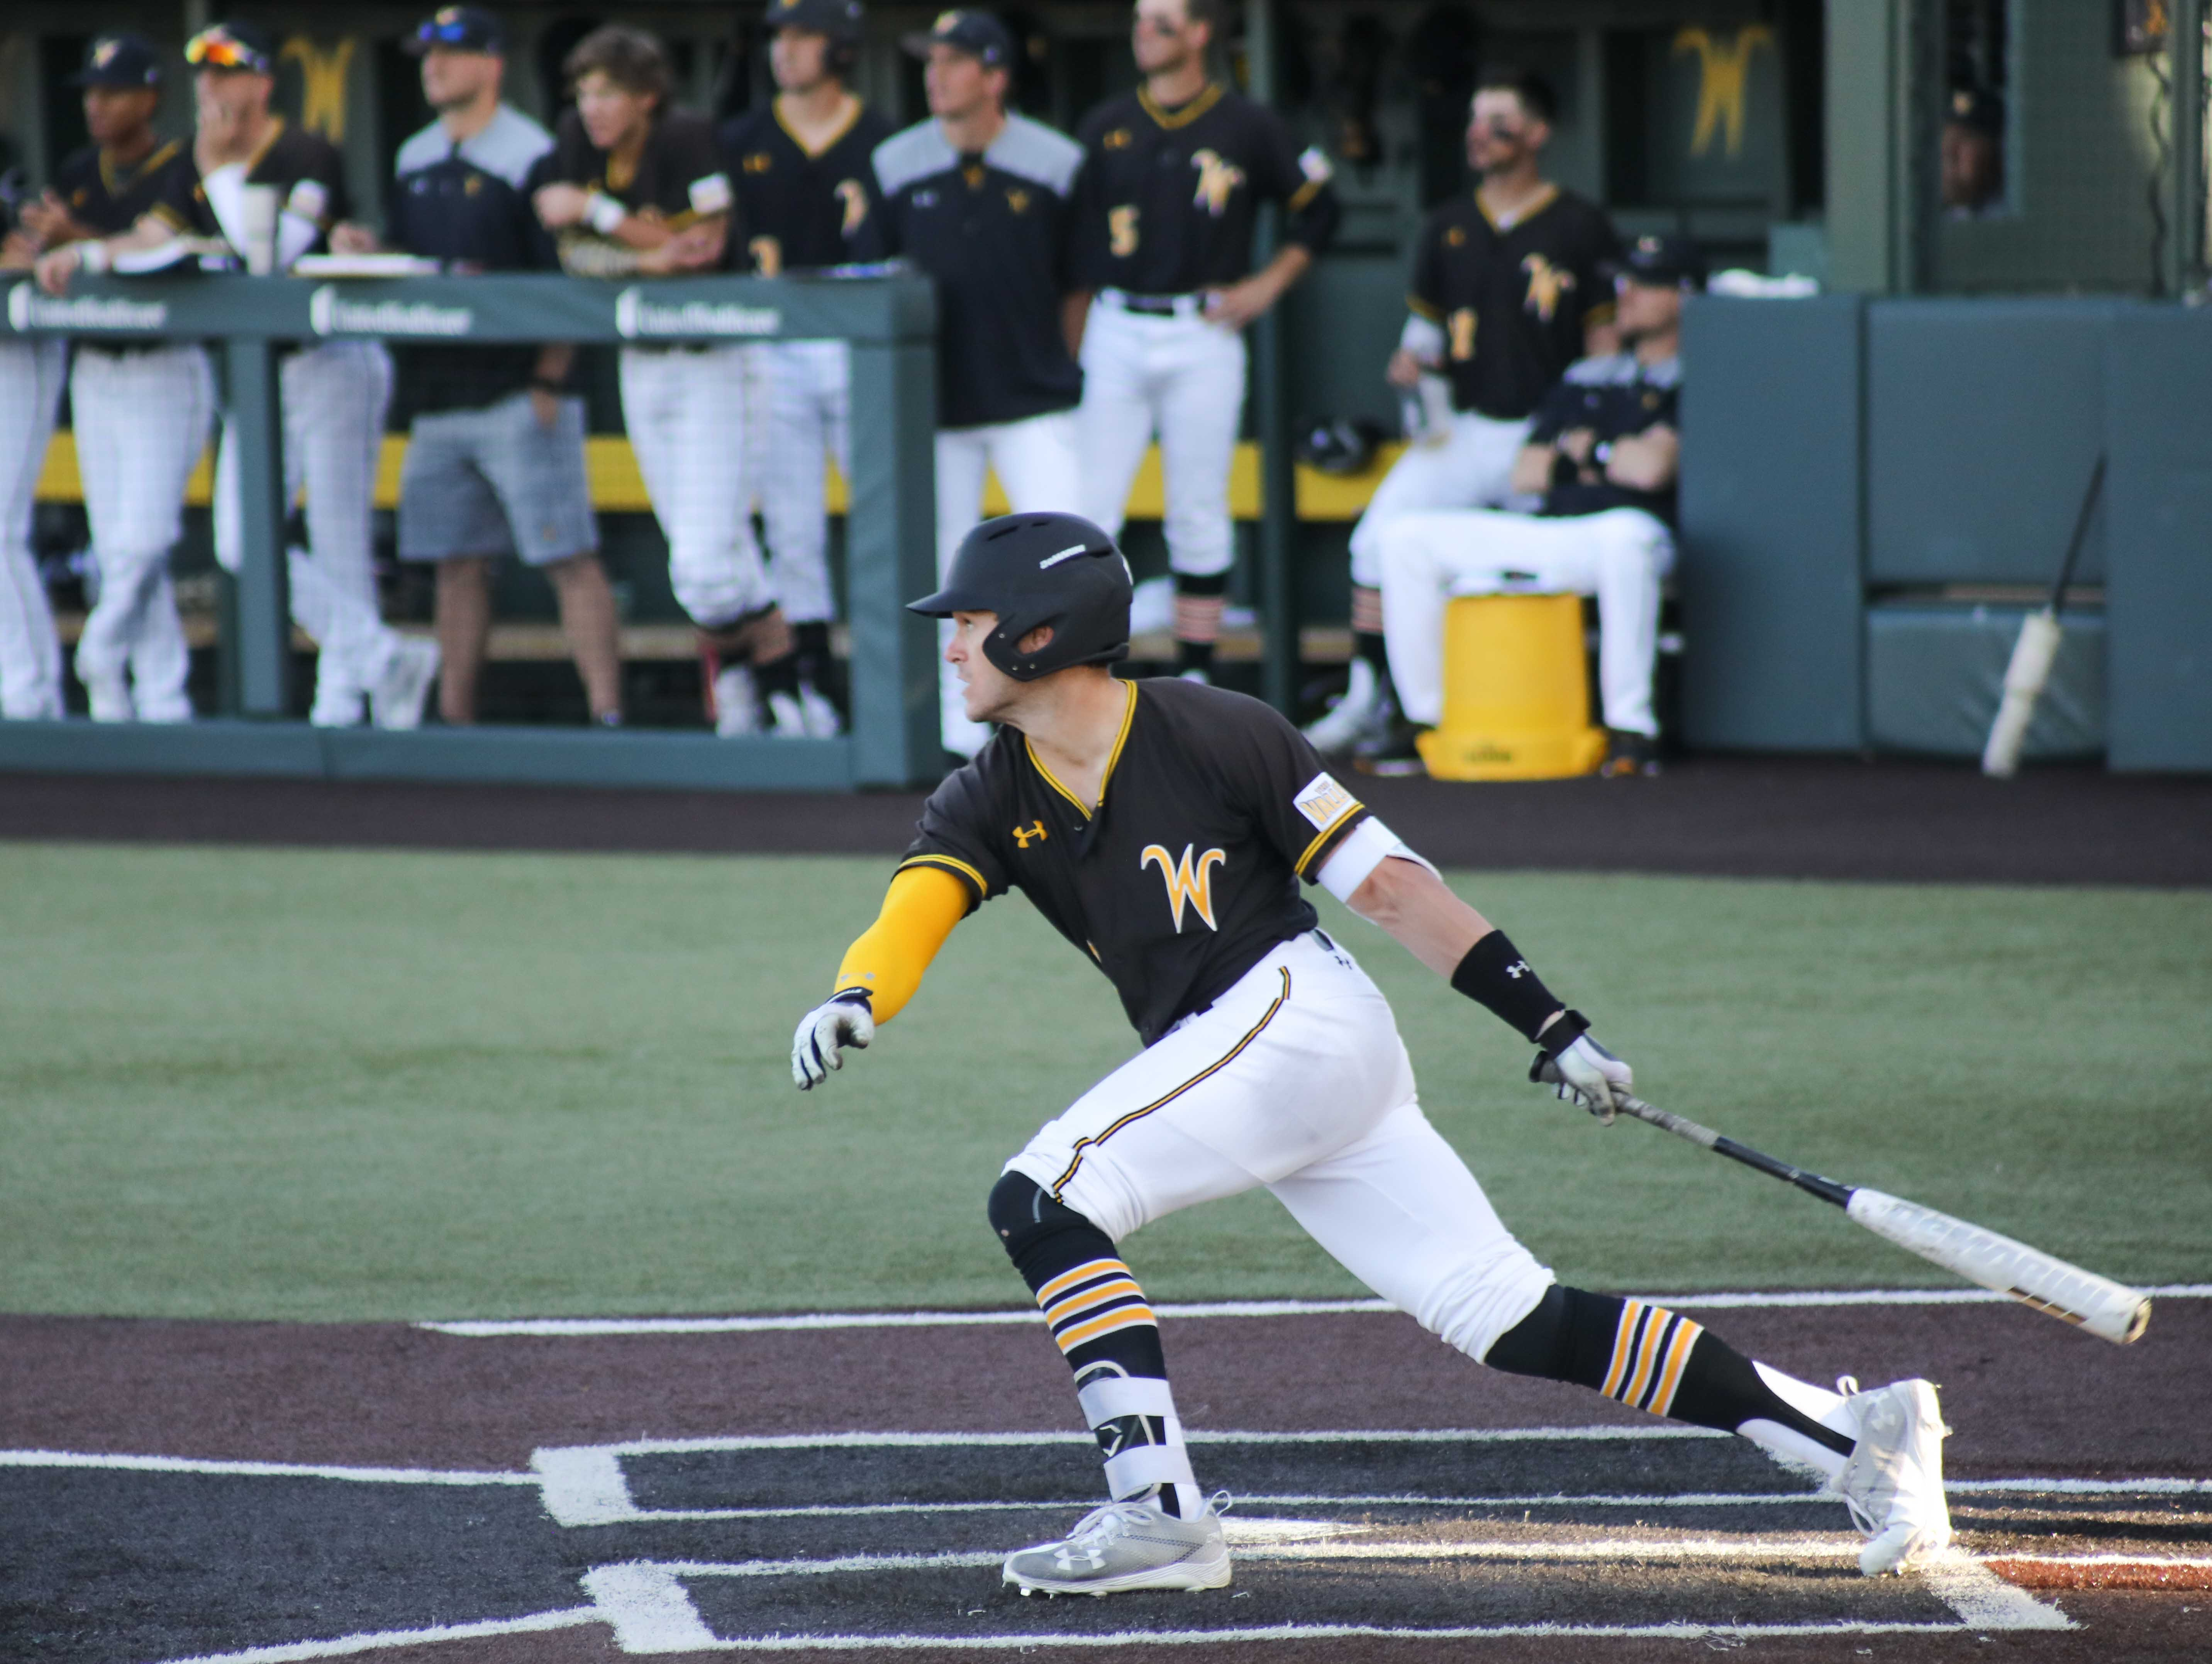 Wichita State Sophomore Travis Young (1) looks on after a hit against Utah Valley. (Feb. 18, 2017)